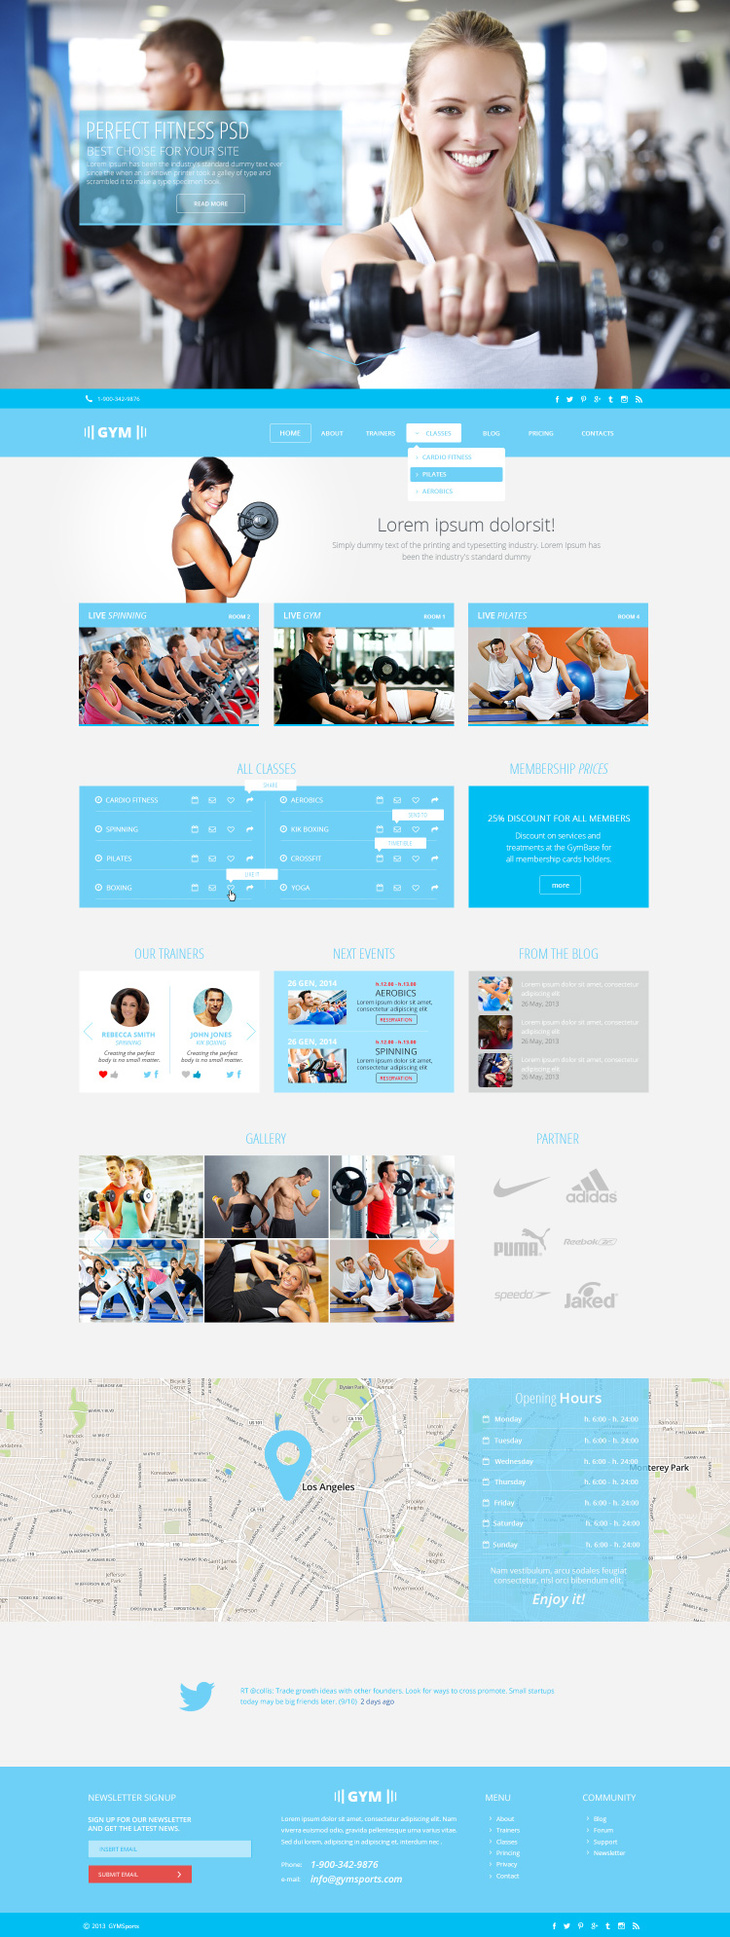 gym sports free psd template free psd file